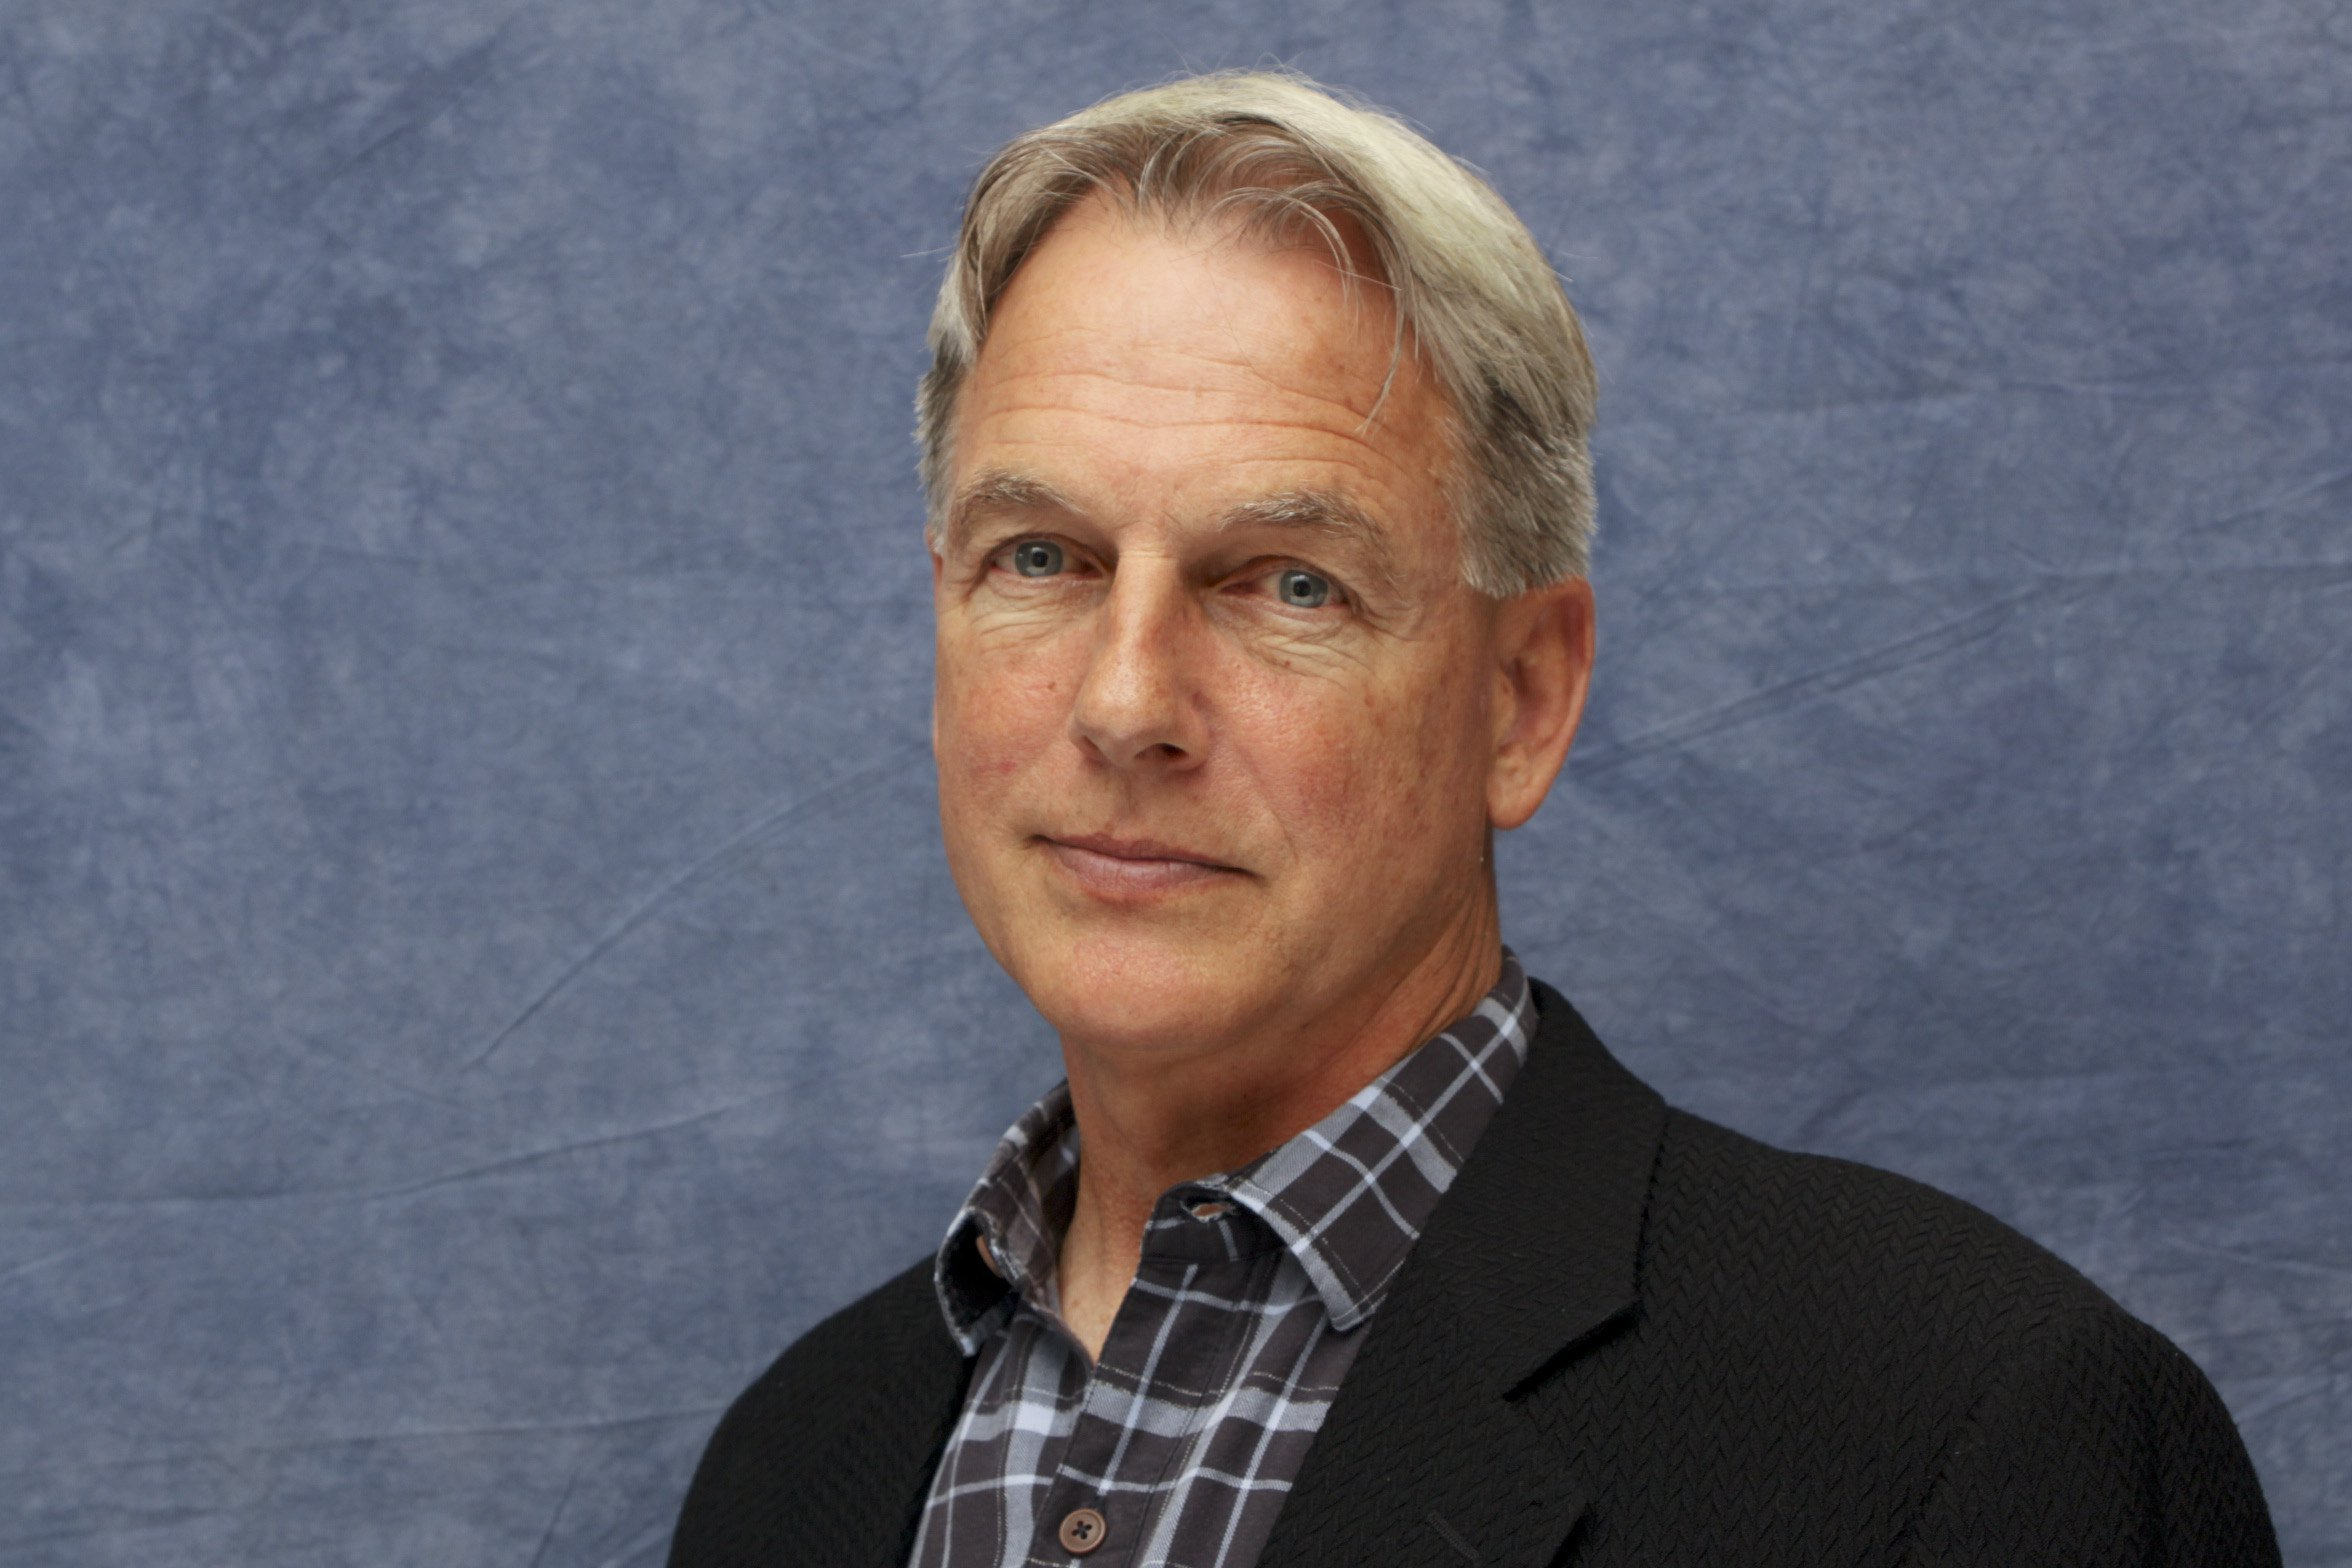 Mark Harmon at the Four Seasons Hotel in Beverly Hills, California on April 22, 2009. | Source: Getty Images